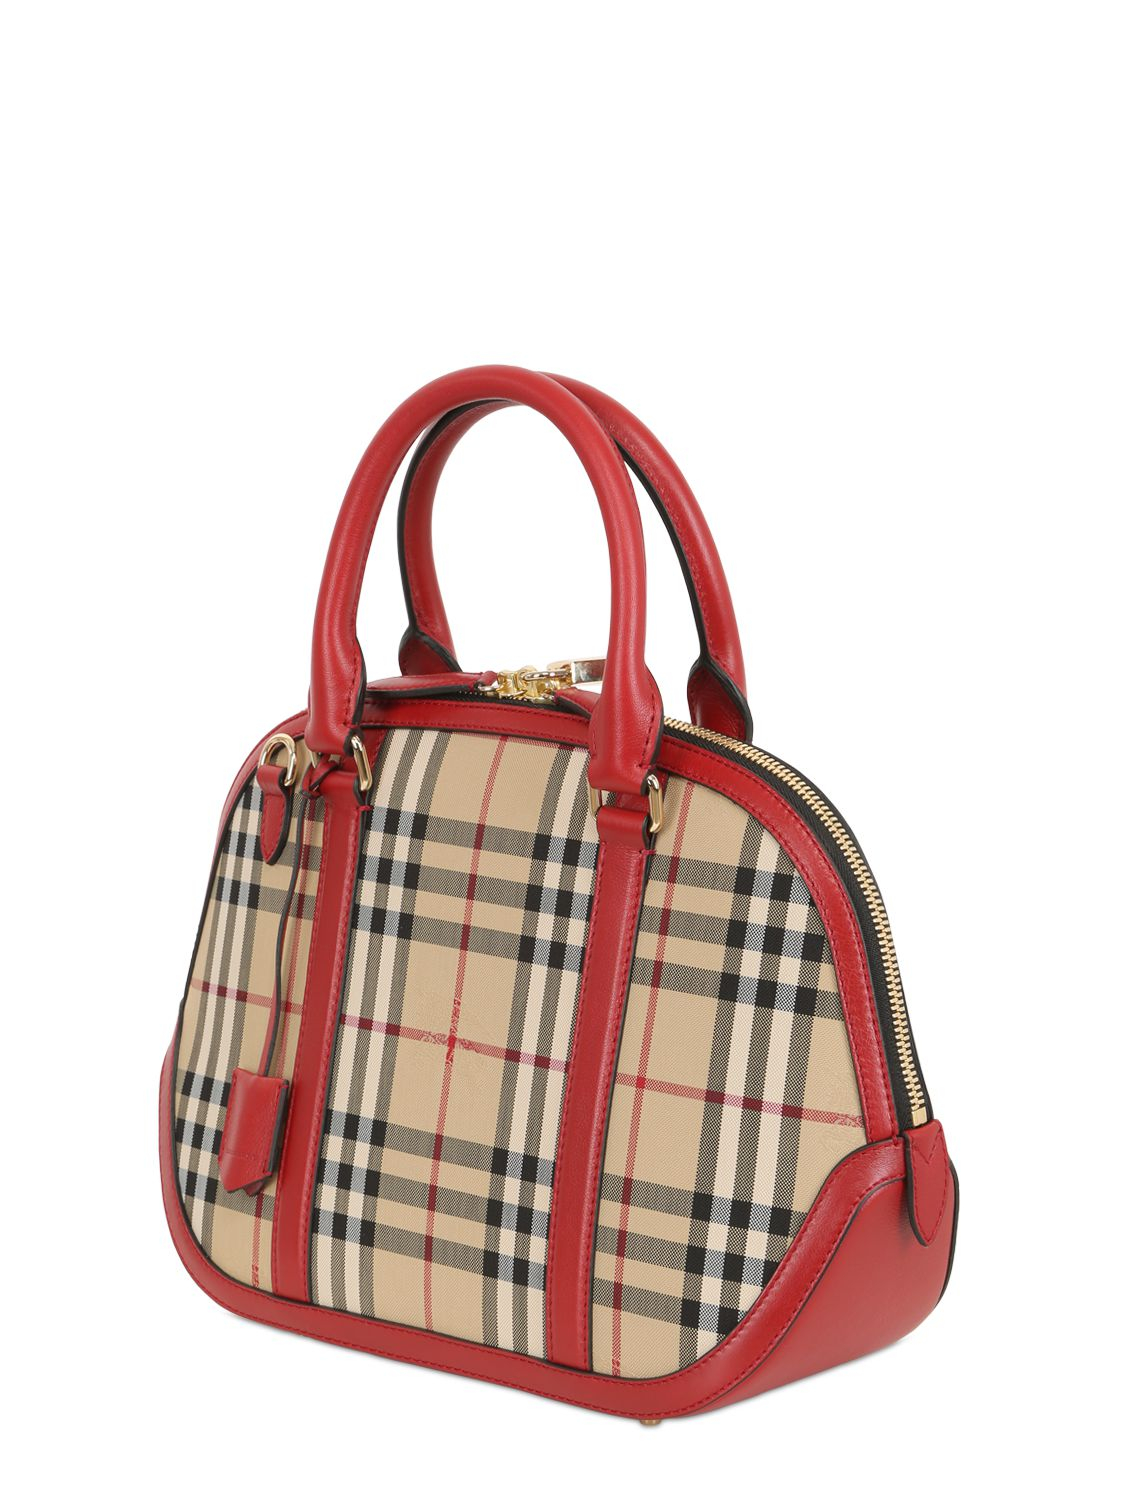 52d4a144173e Keeping Burberry Small Bags   Lyst burberry small orchard bridle house  check bag in red